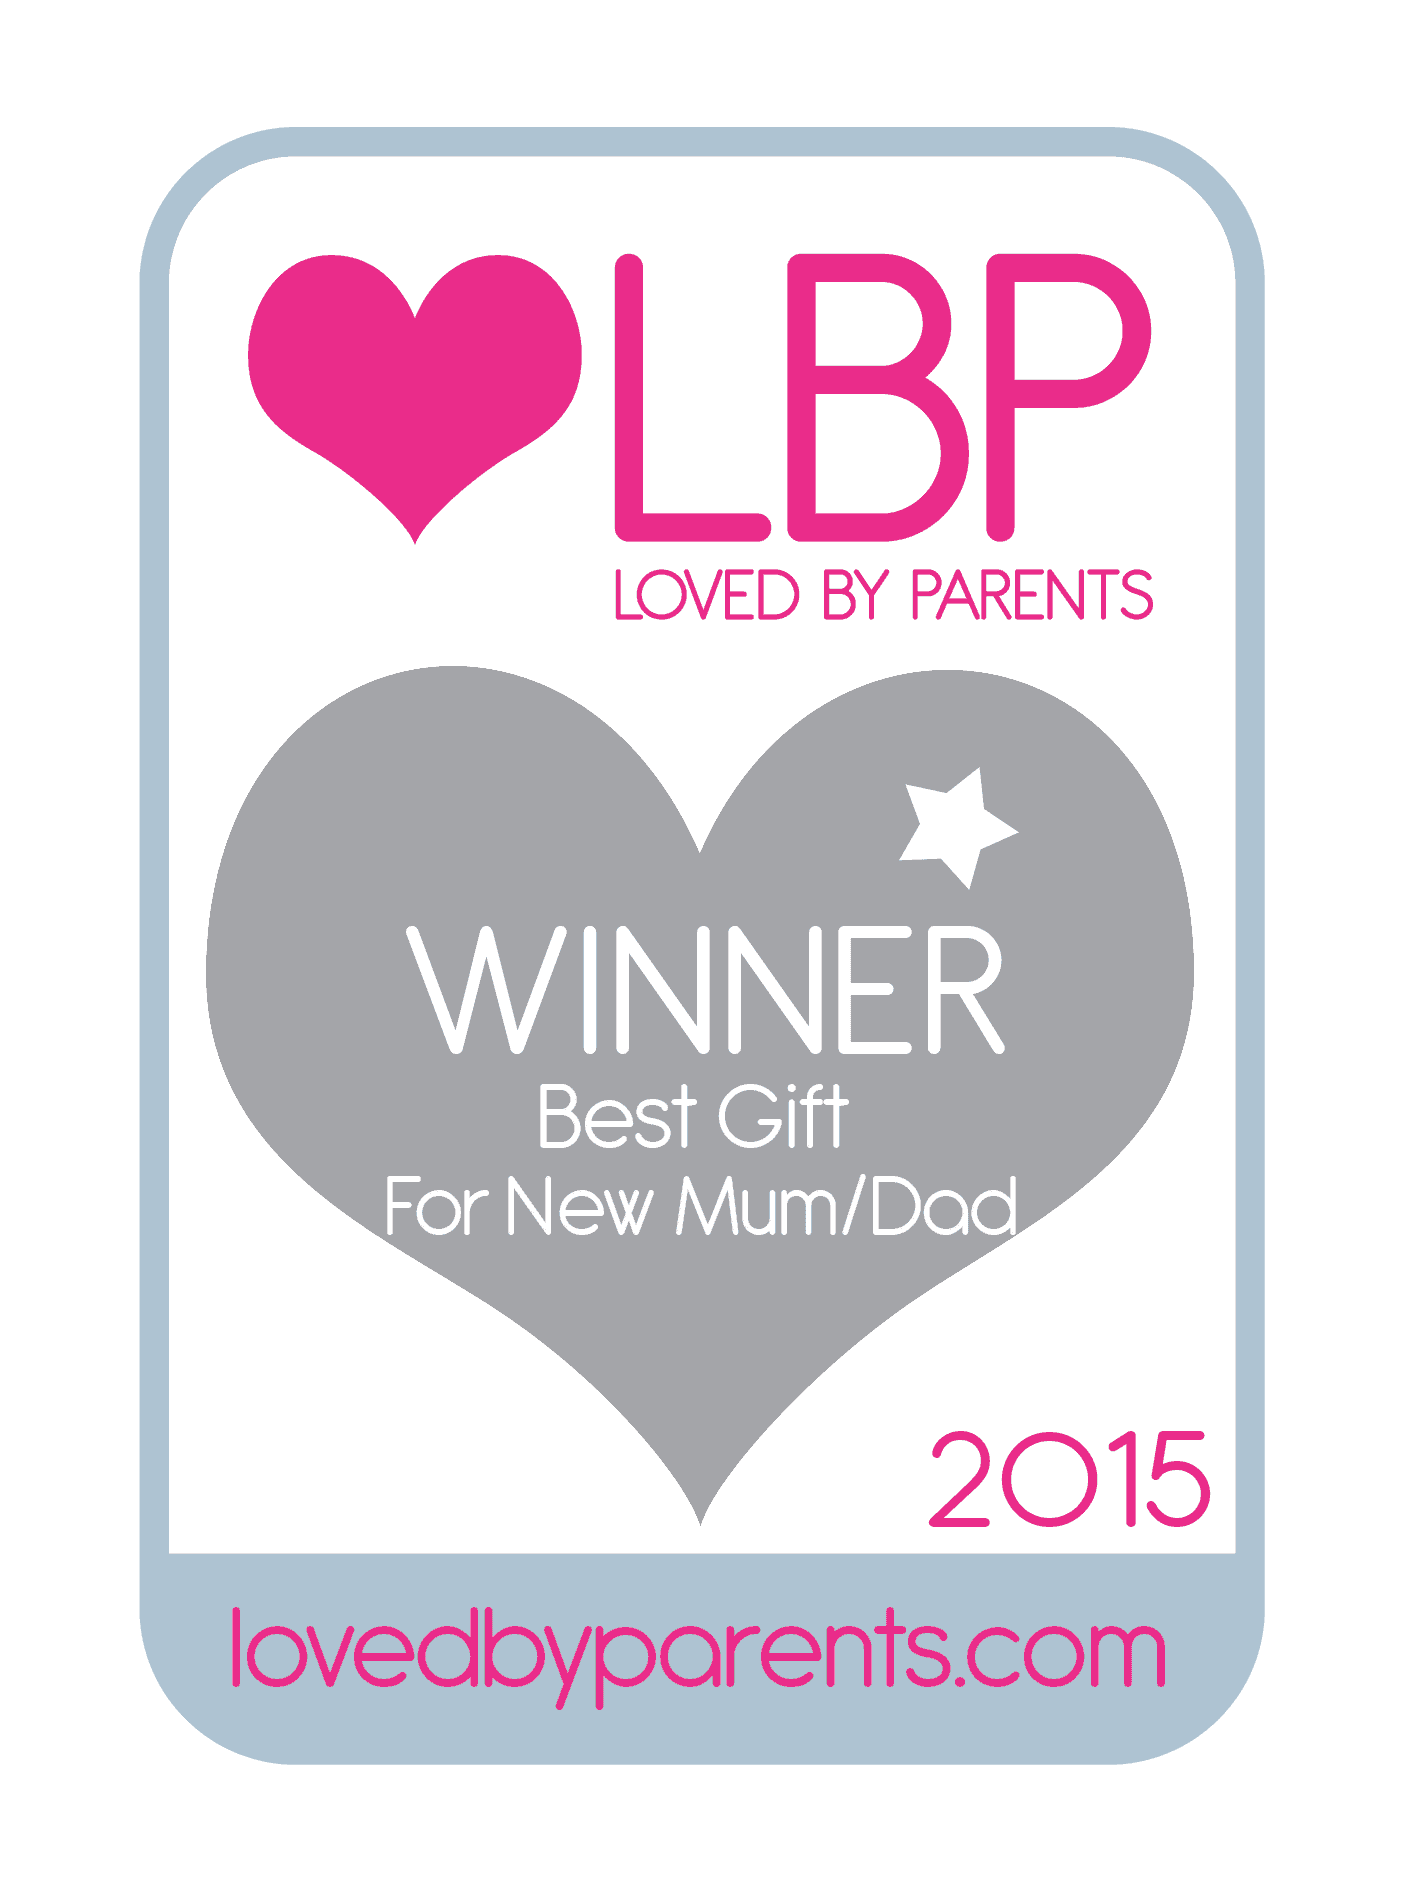 Loved by Parents Silver Award